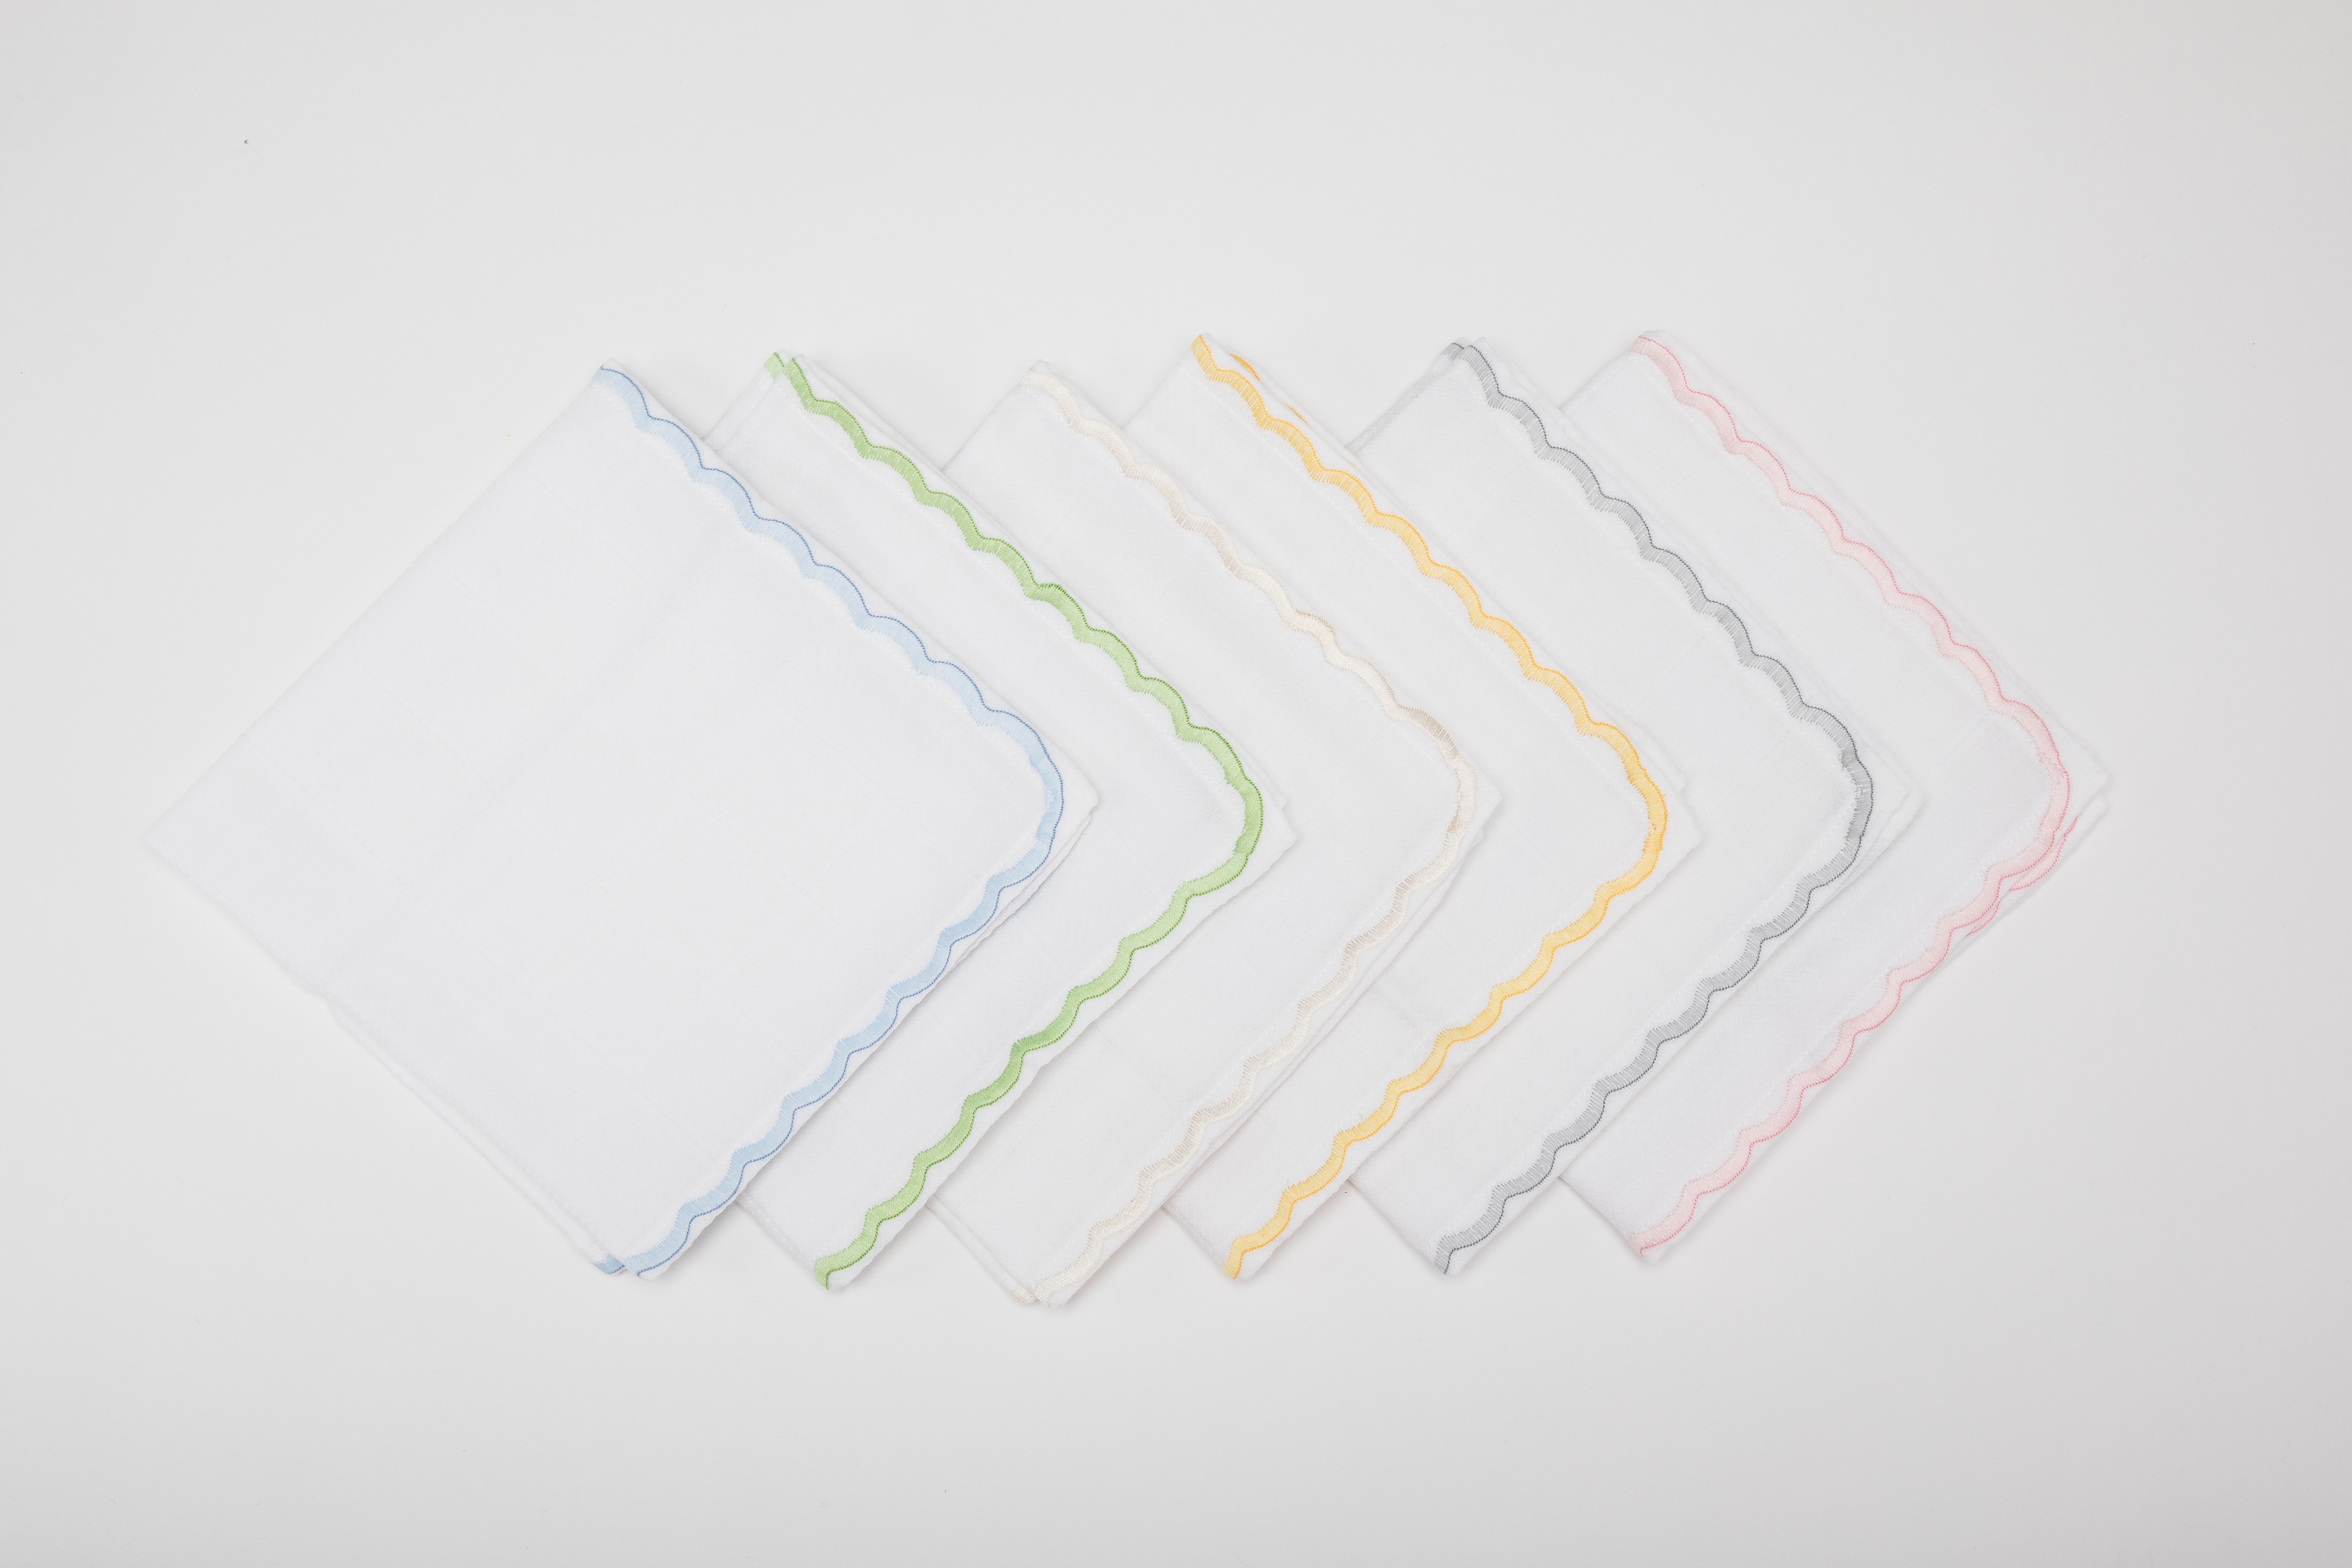 fofolino baby muslin square with scallop edge border in various